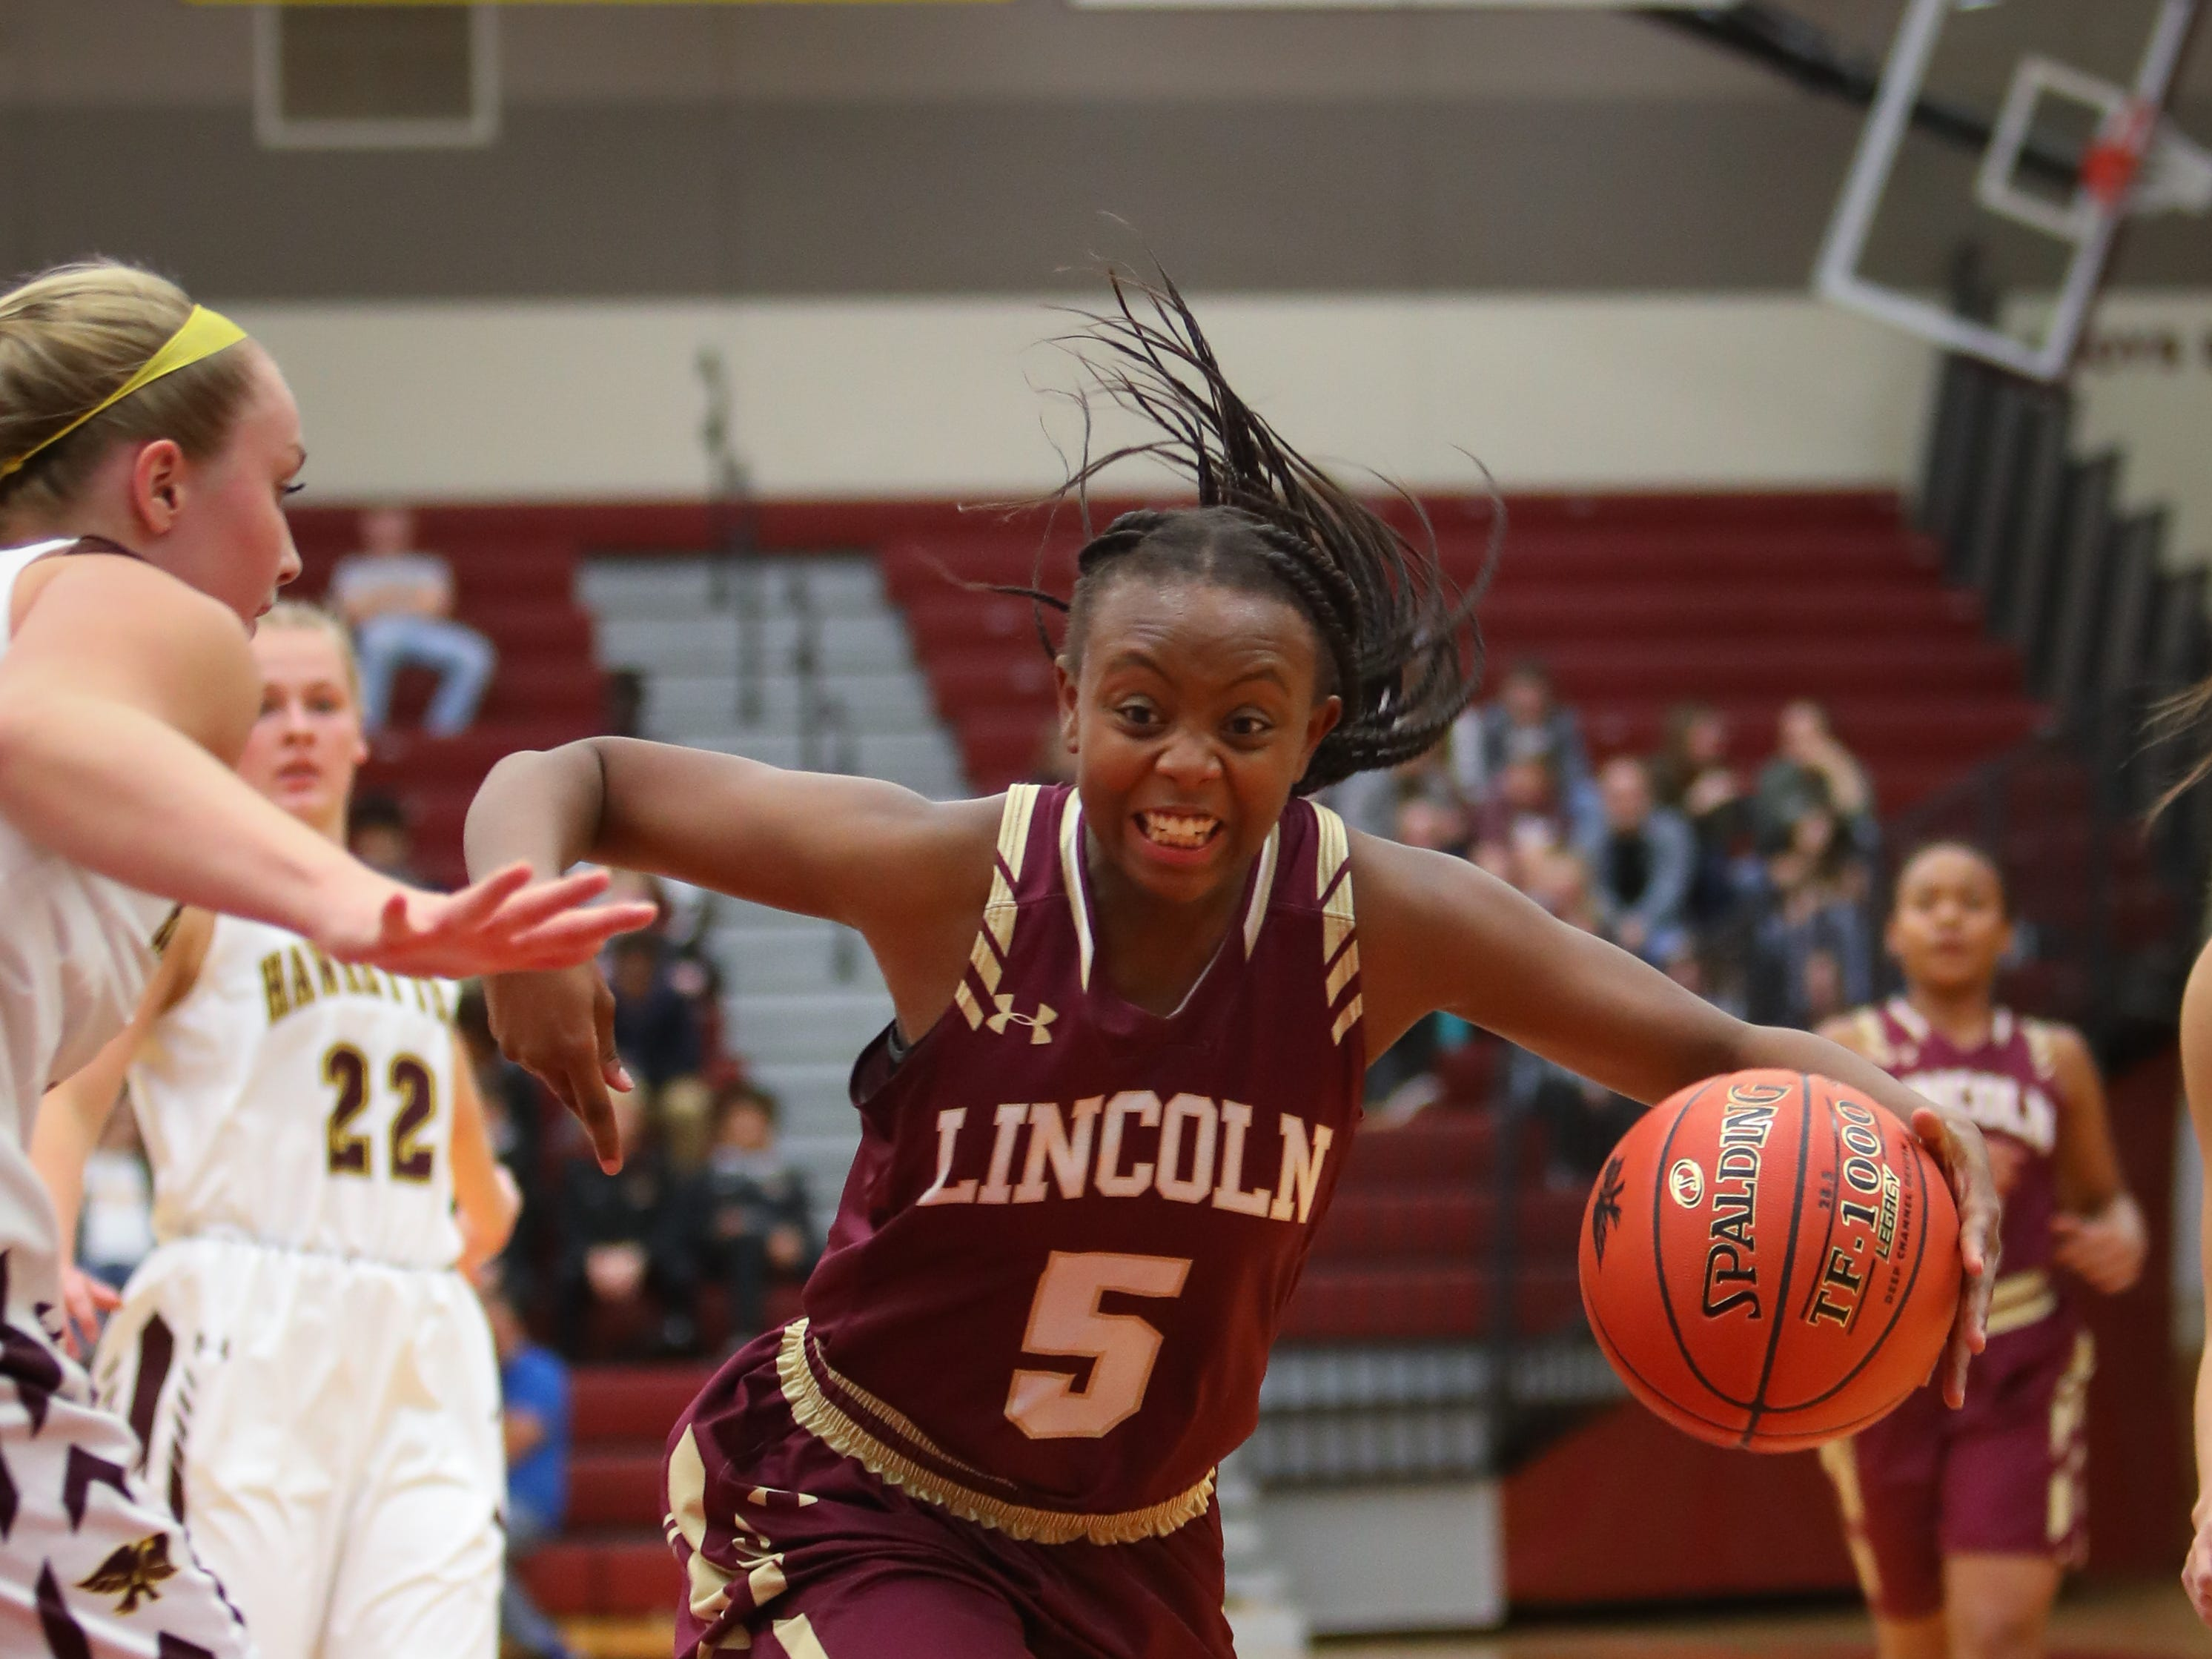 Lincoln freshman Trinity Cheatom drives to the hoop during a girls high school basketball game between the Lincoln Railsplitters and the Ankeny Hawks at Ankeny High School on Dec. 4, 2018 in Ankeny, Iowa.